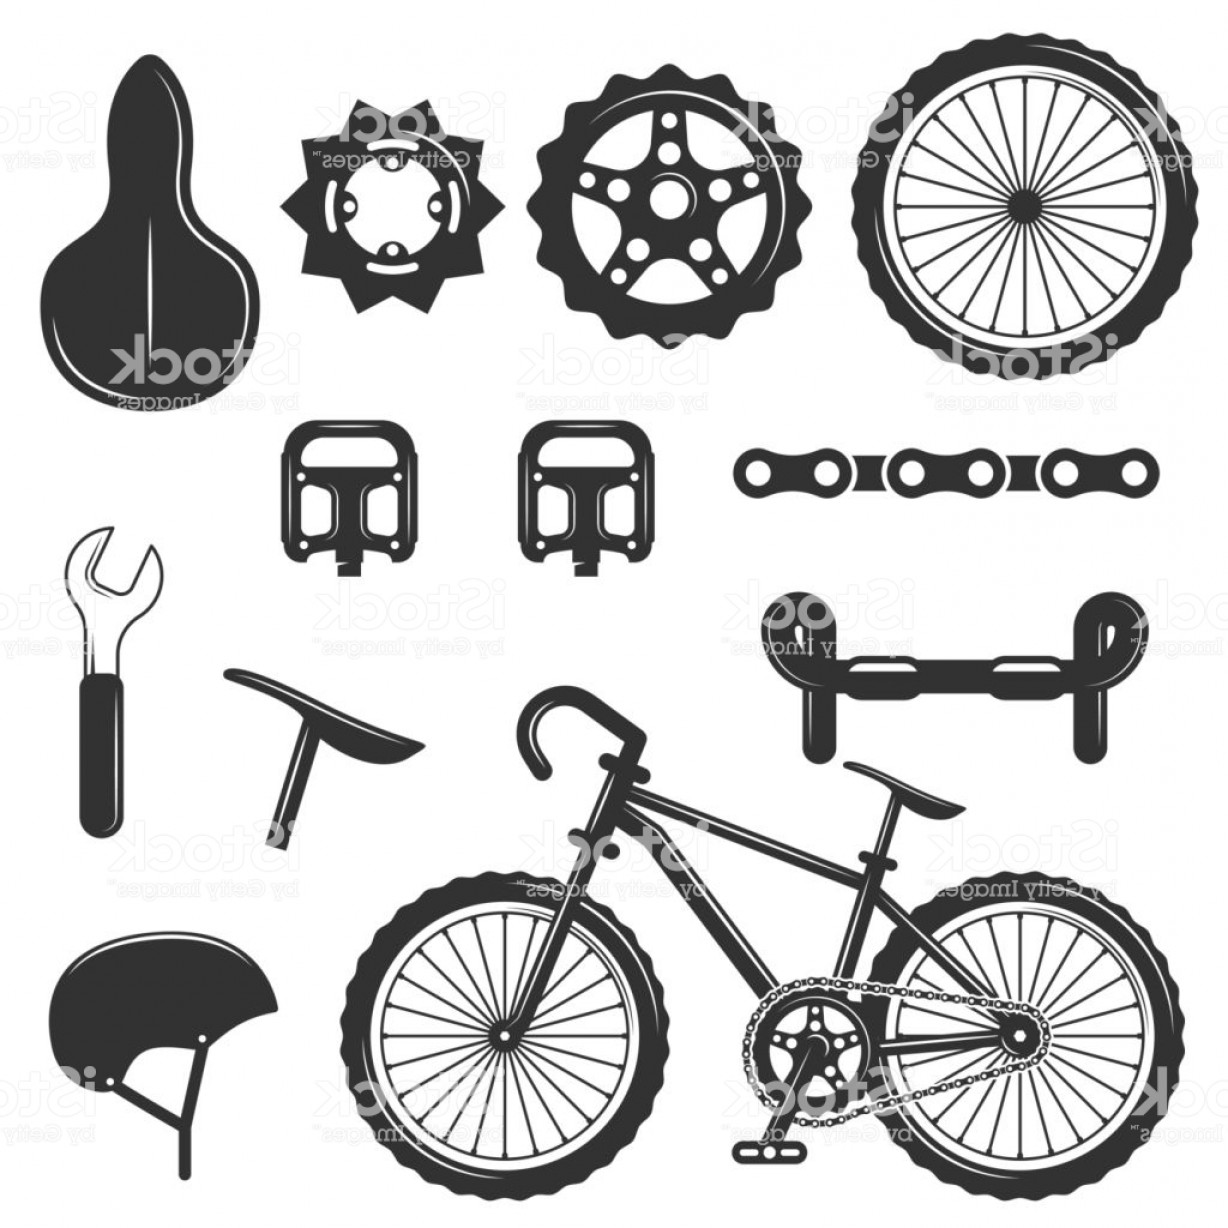 BMX Bike Tire Vector: Vector Set Of Bicycle Parts Isolated Icons Black And White Bicycle Symbols And Gm